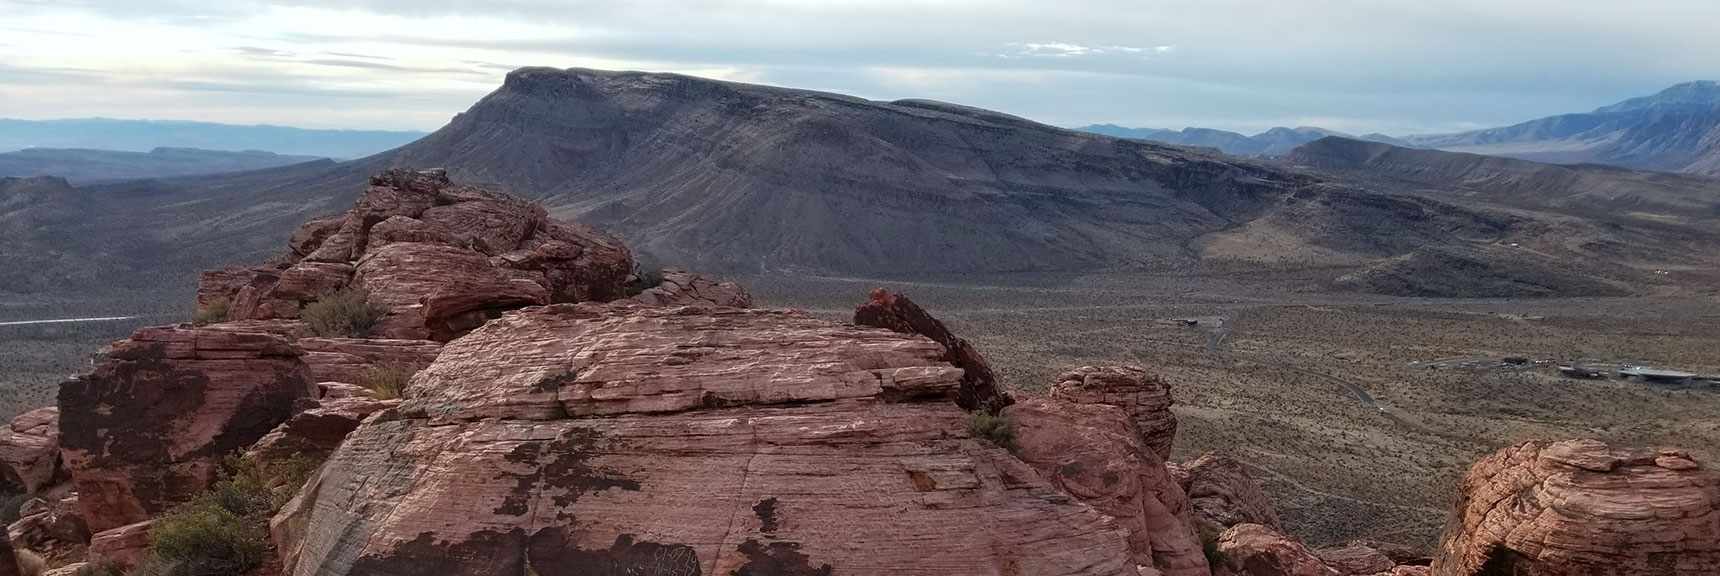 View Toward Goat Mountain from the Summit of Calico Hills in Red Rock National Park, Nevada